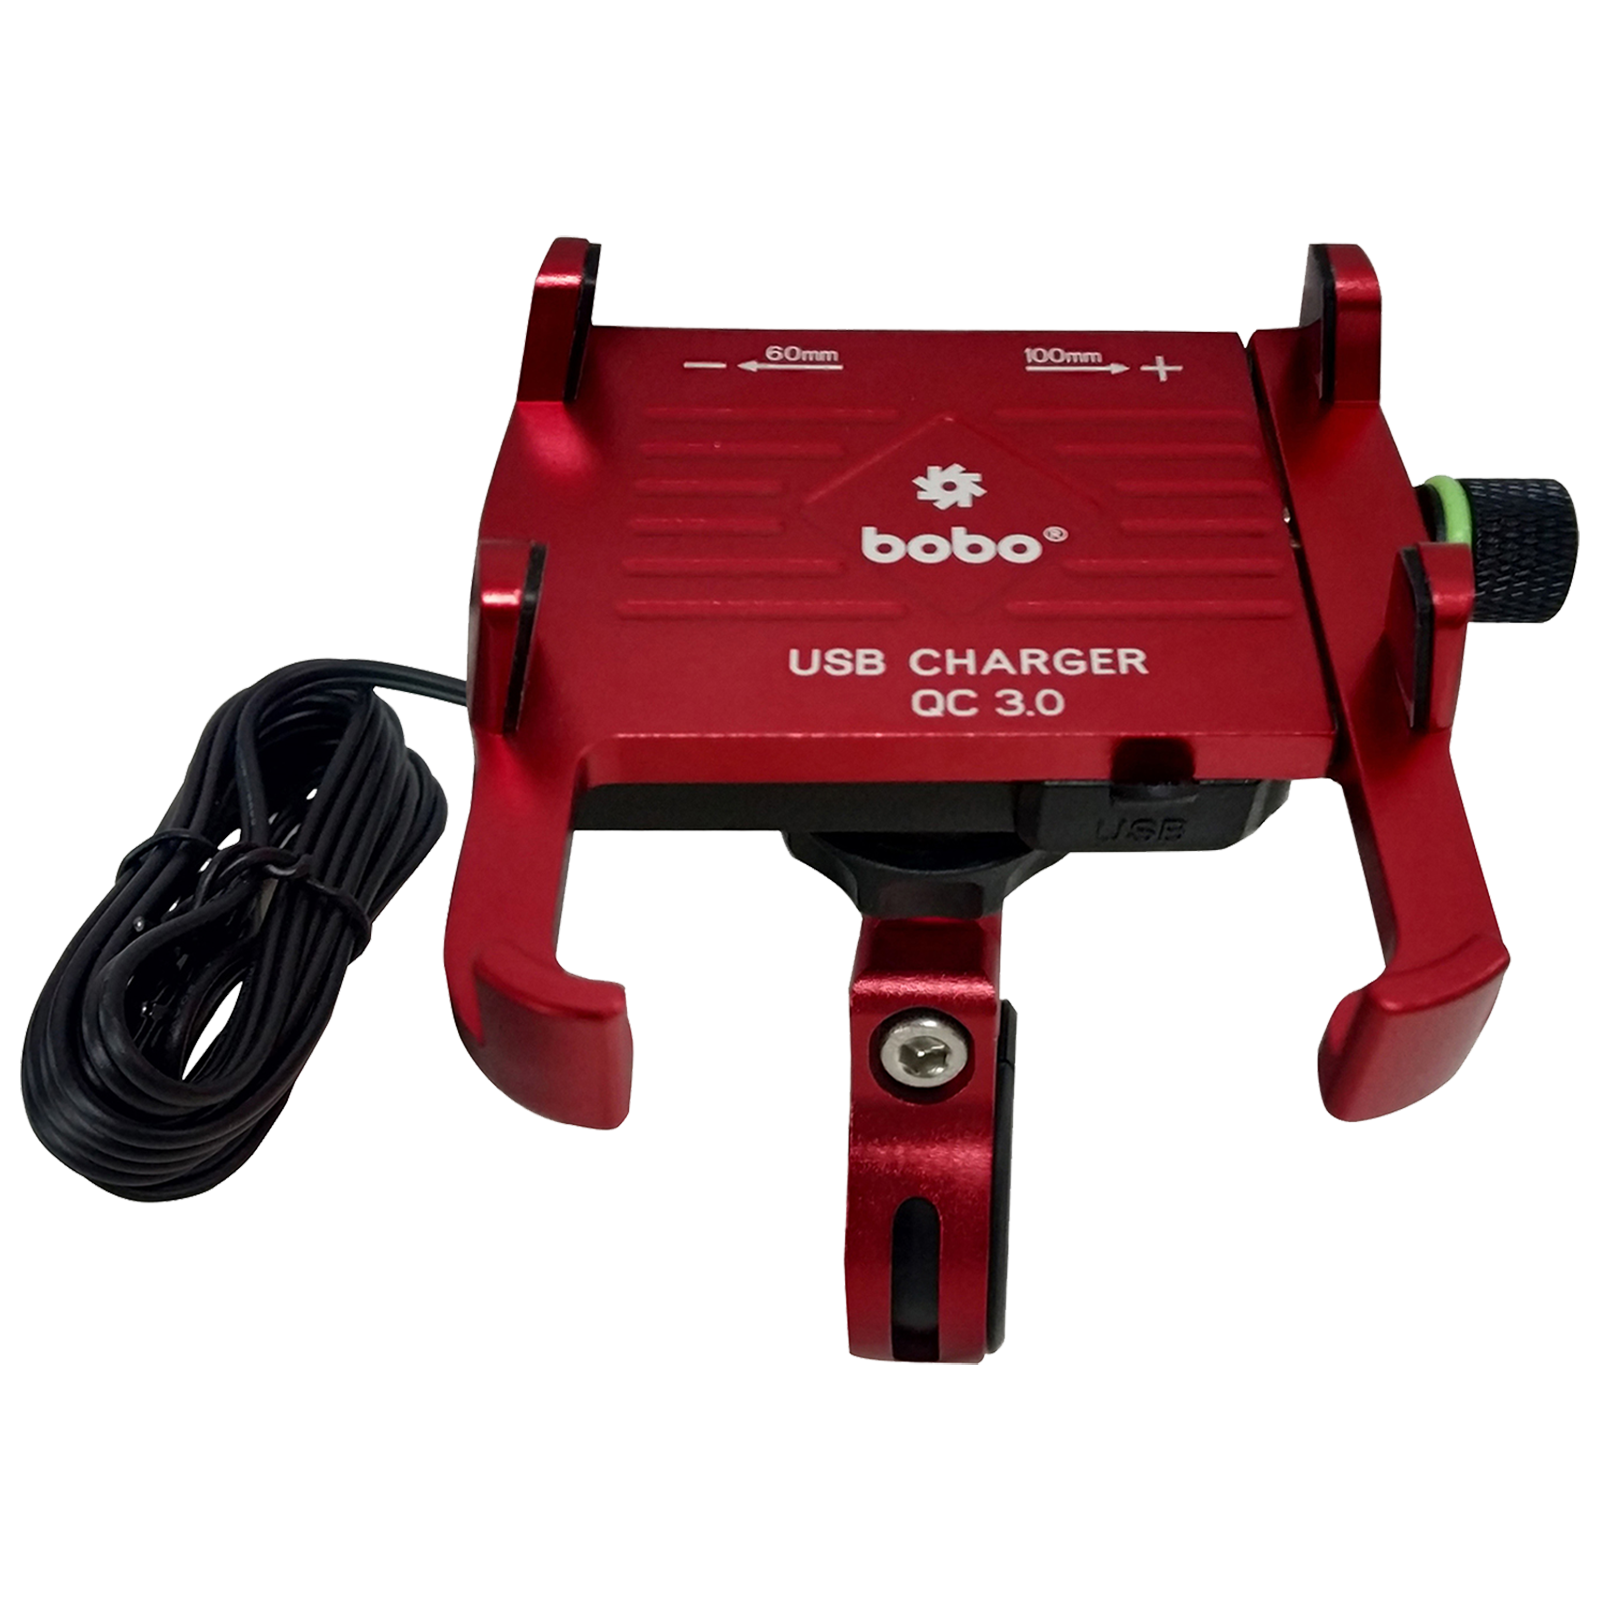 Bobo BM5 Claw-Grip Aluminium Mounting Kit For Bike (With Fast USB 3.0 Charger, BB-BM-005-001002, Red)_1